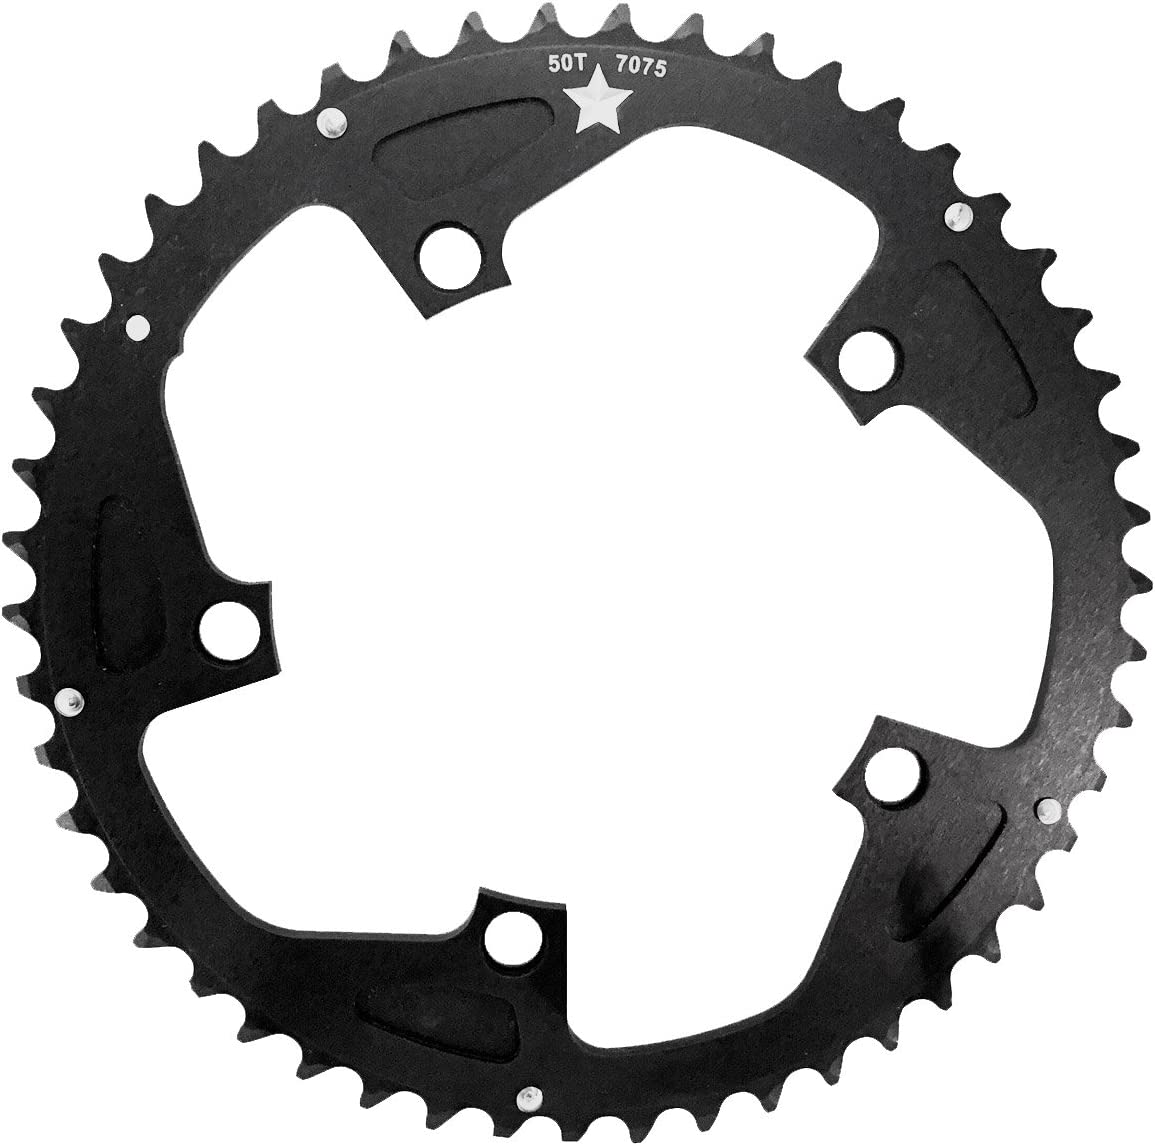 130mm Mountain Road Bike BCD Tooth Disc Crankset Chainring Cycling Parts  Tools